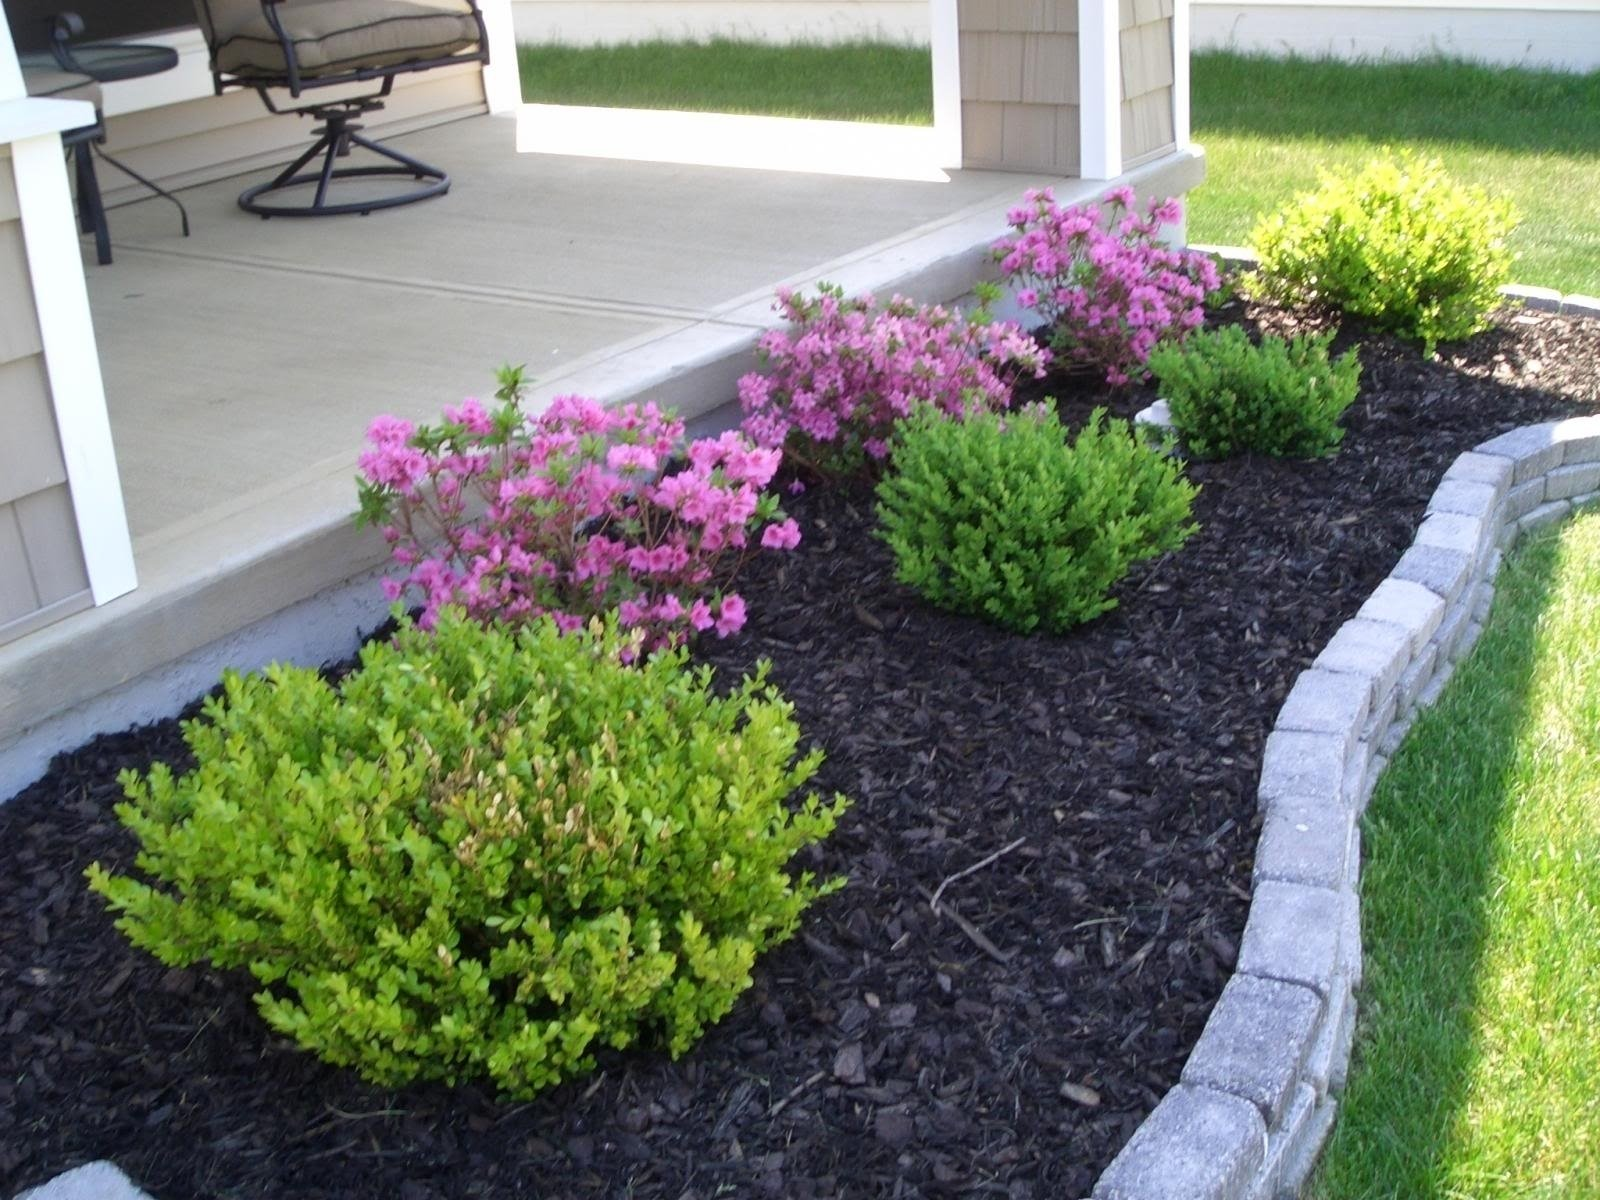 10 Nice Ideas For Front Yard Landscaping the best small front yard landscaping idea bistrodre porch and 2 2020